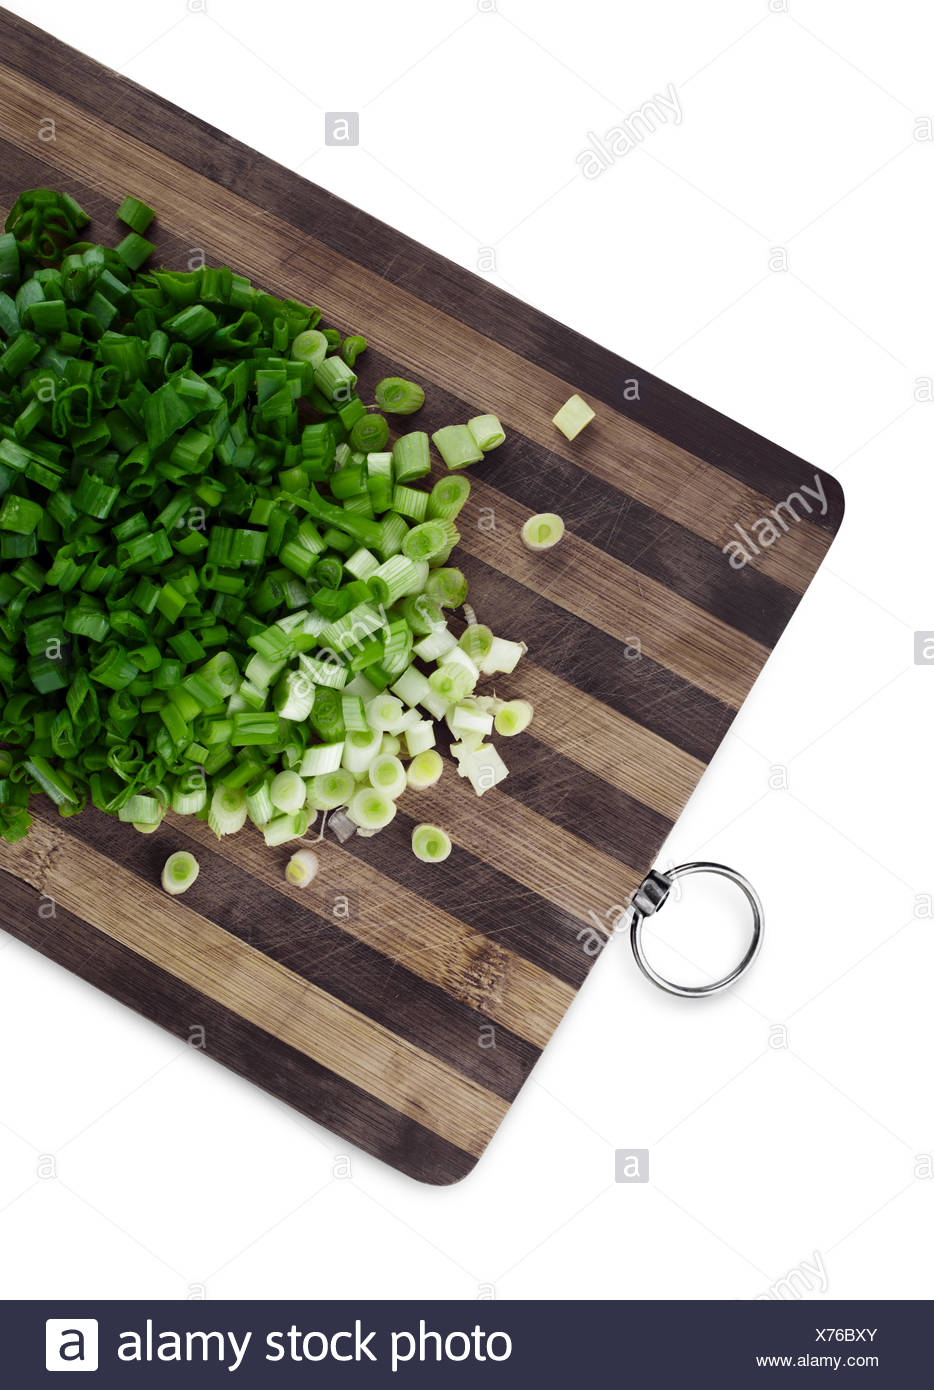 Green chopped onions on a cutting board Stock Photo